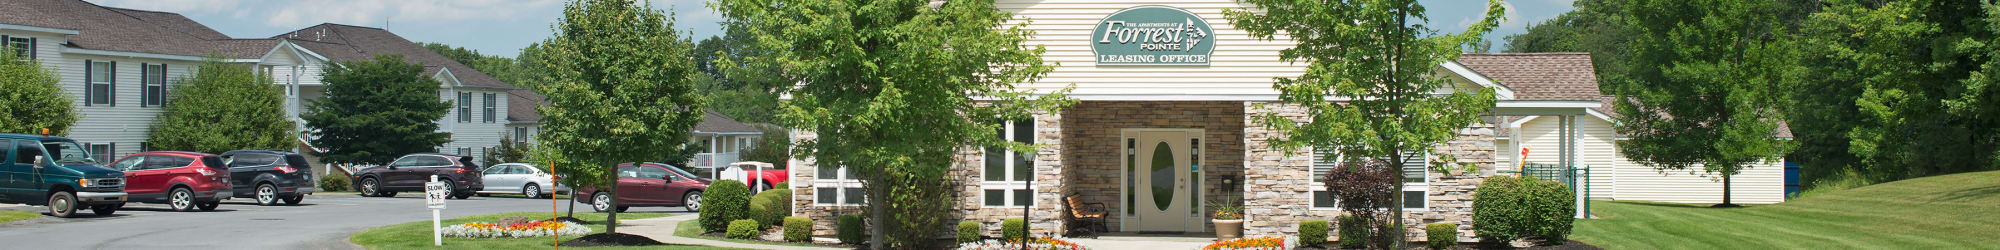 Reviews of Forrest Pointe Apartments and Townhomes in East Greenbush